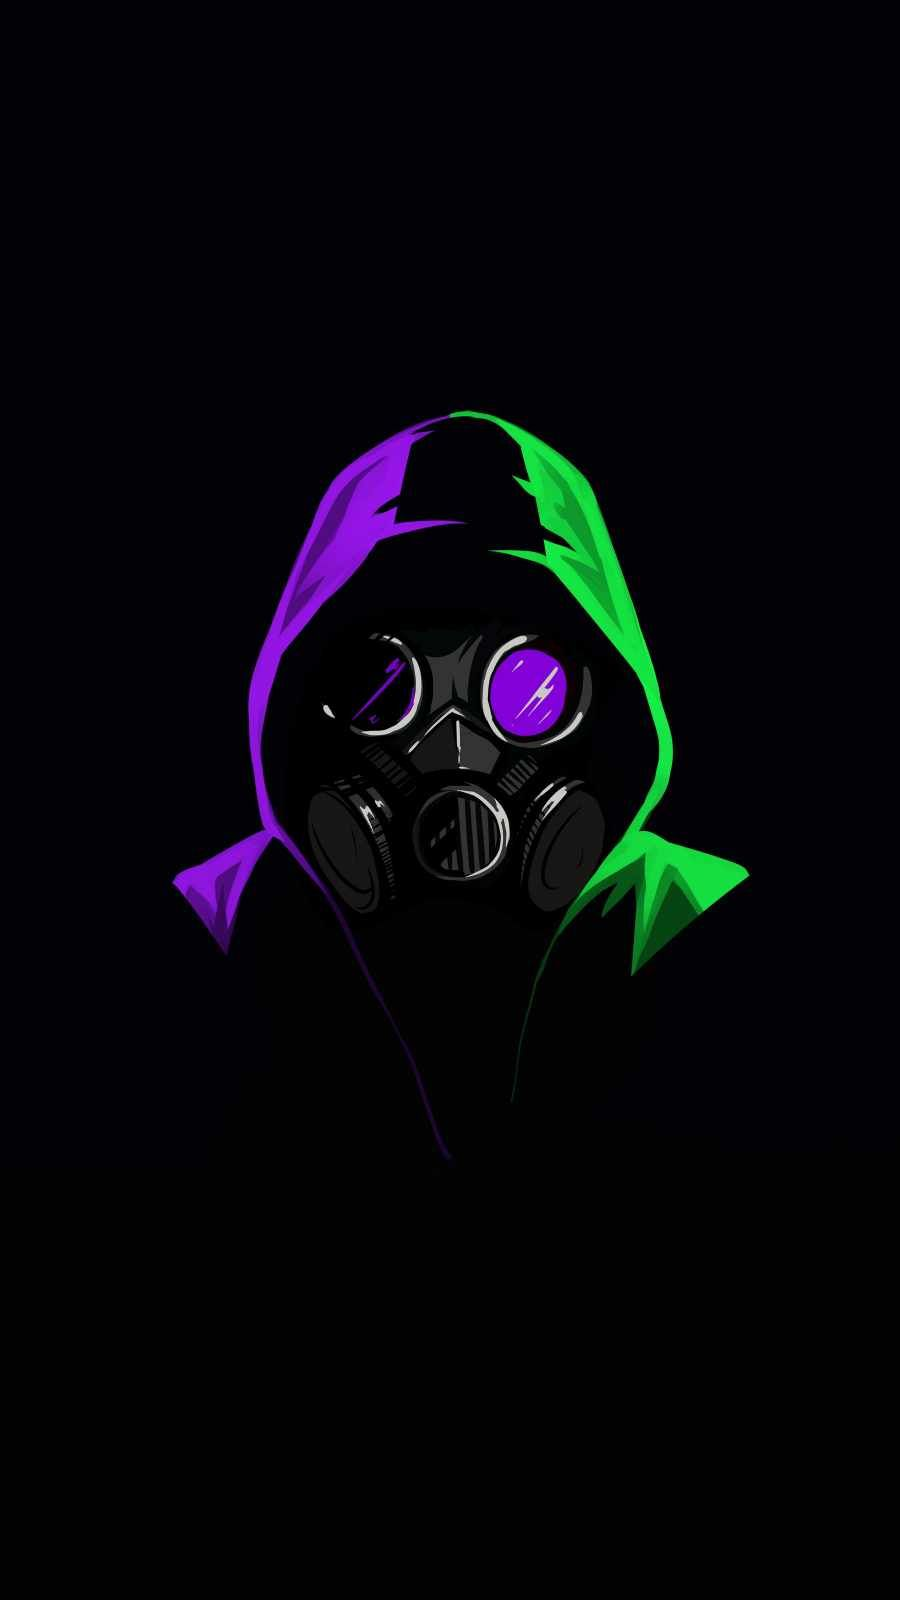 Hoodie Person Amoled IPhone Wallpaper - IPhone Wallpapers